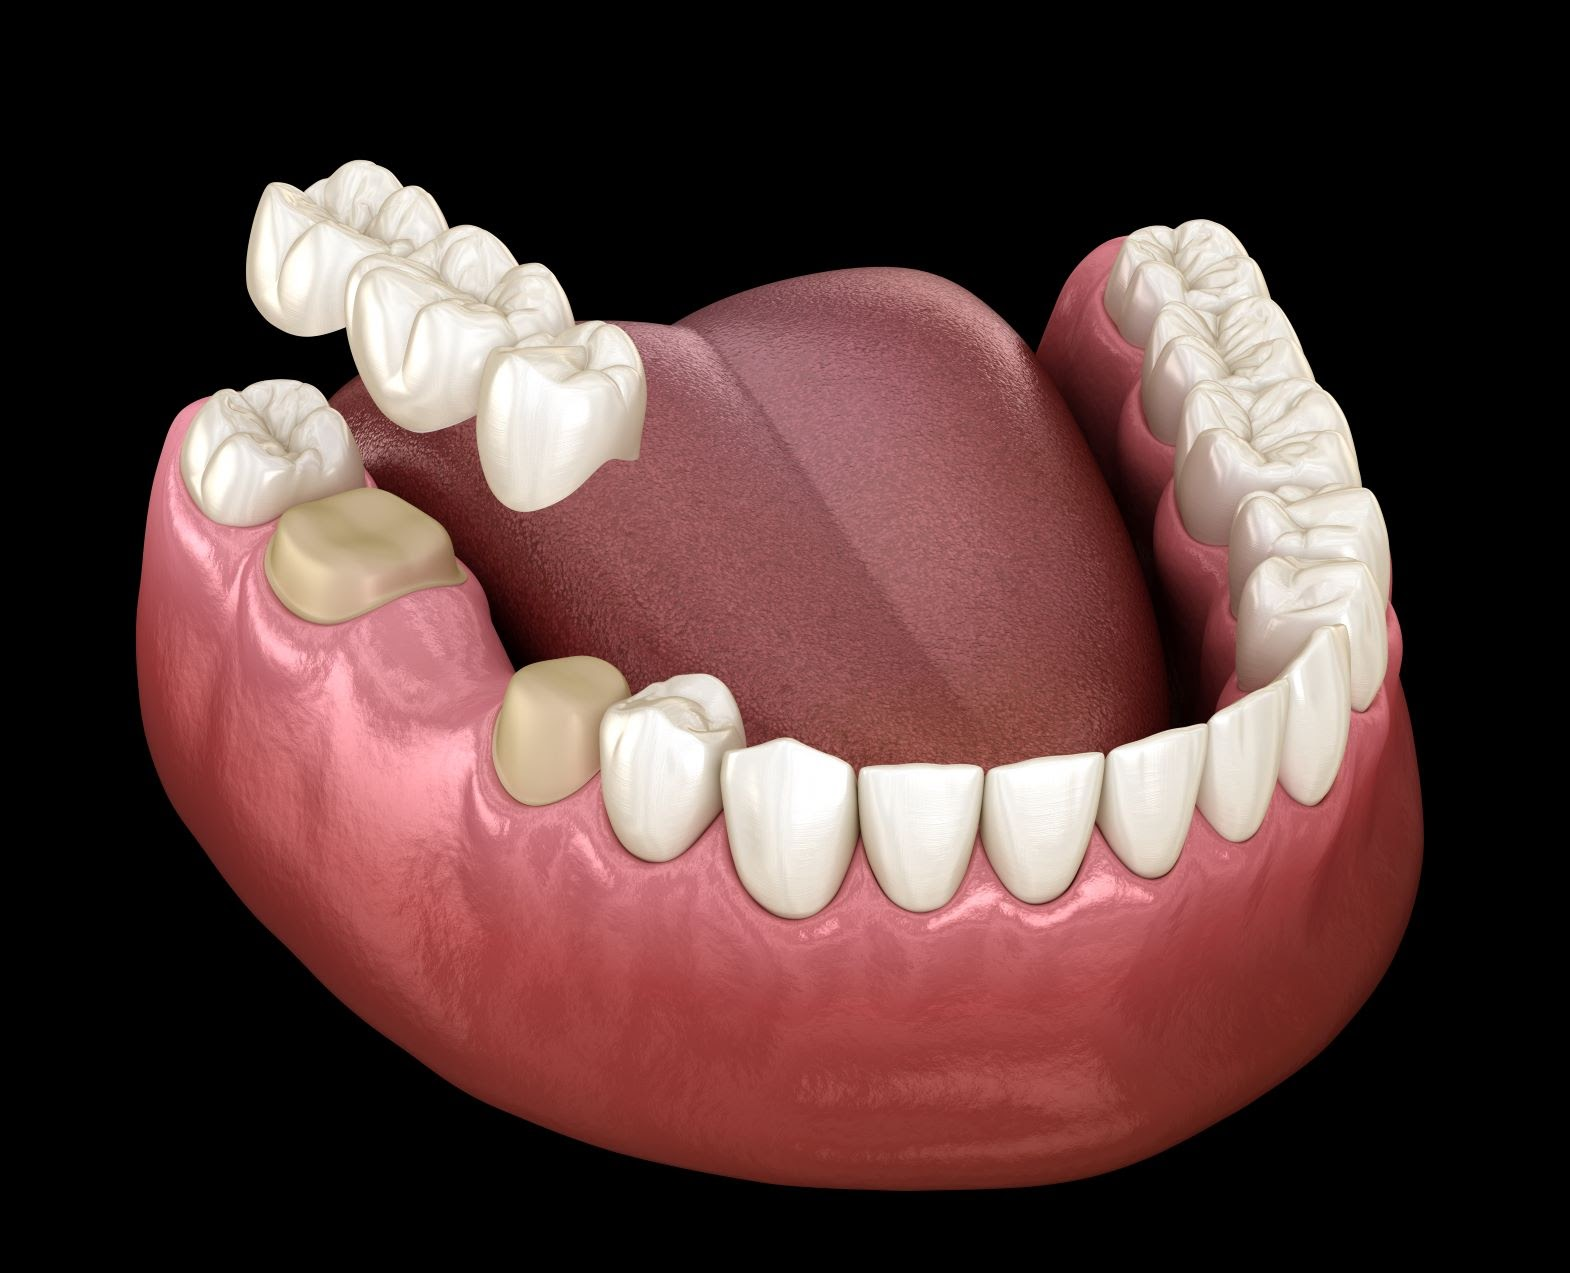 A visual example showing how a dental bridge fits into the mouth